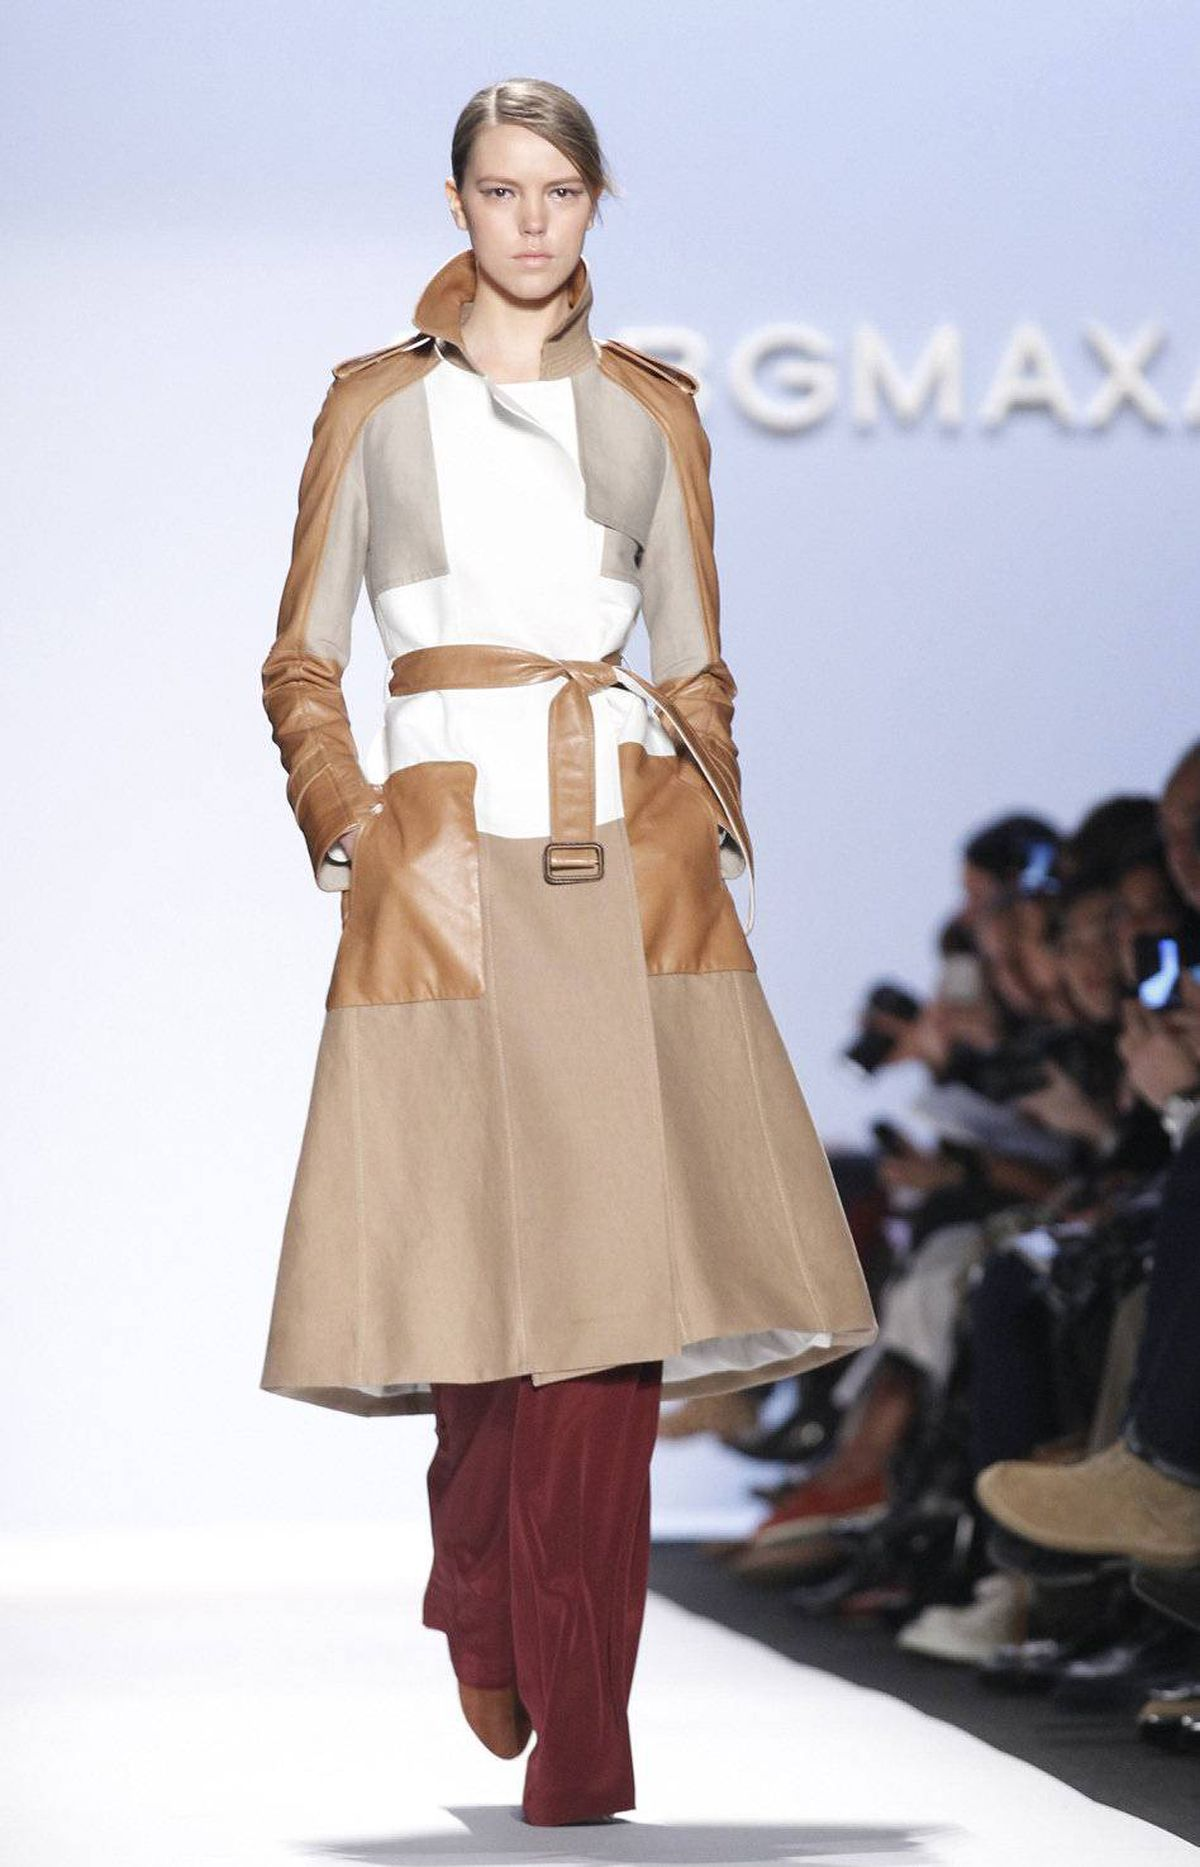 There were some sharp designs, such as this belted trench coat in canvas and leather. Note the wide-leg pants in deep burgundy, an early contender for next fall's hot hue.